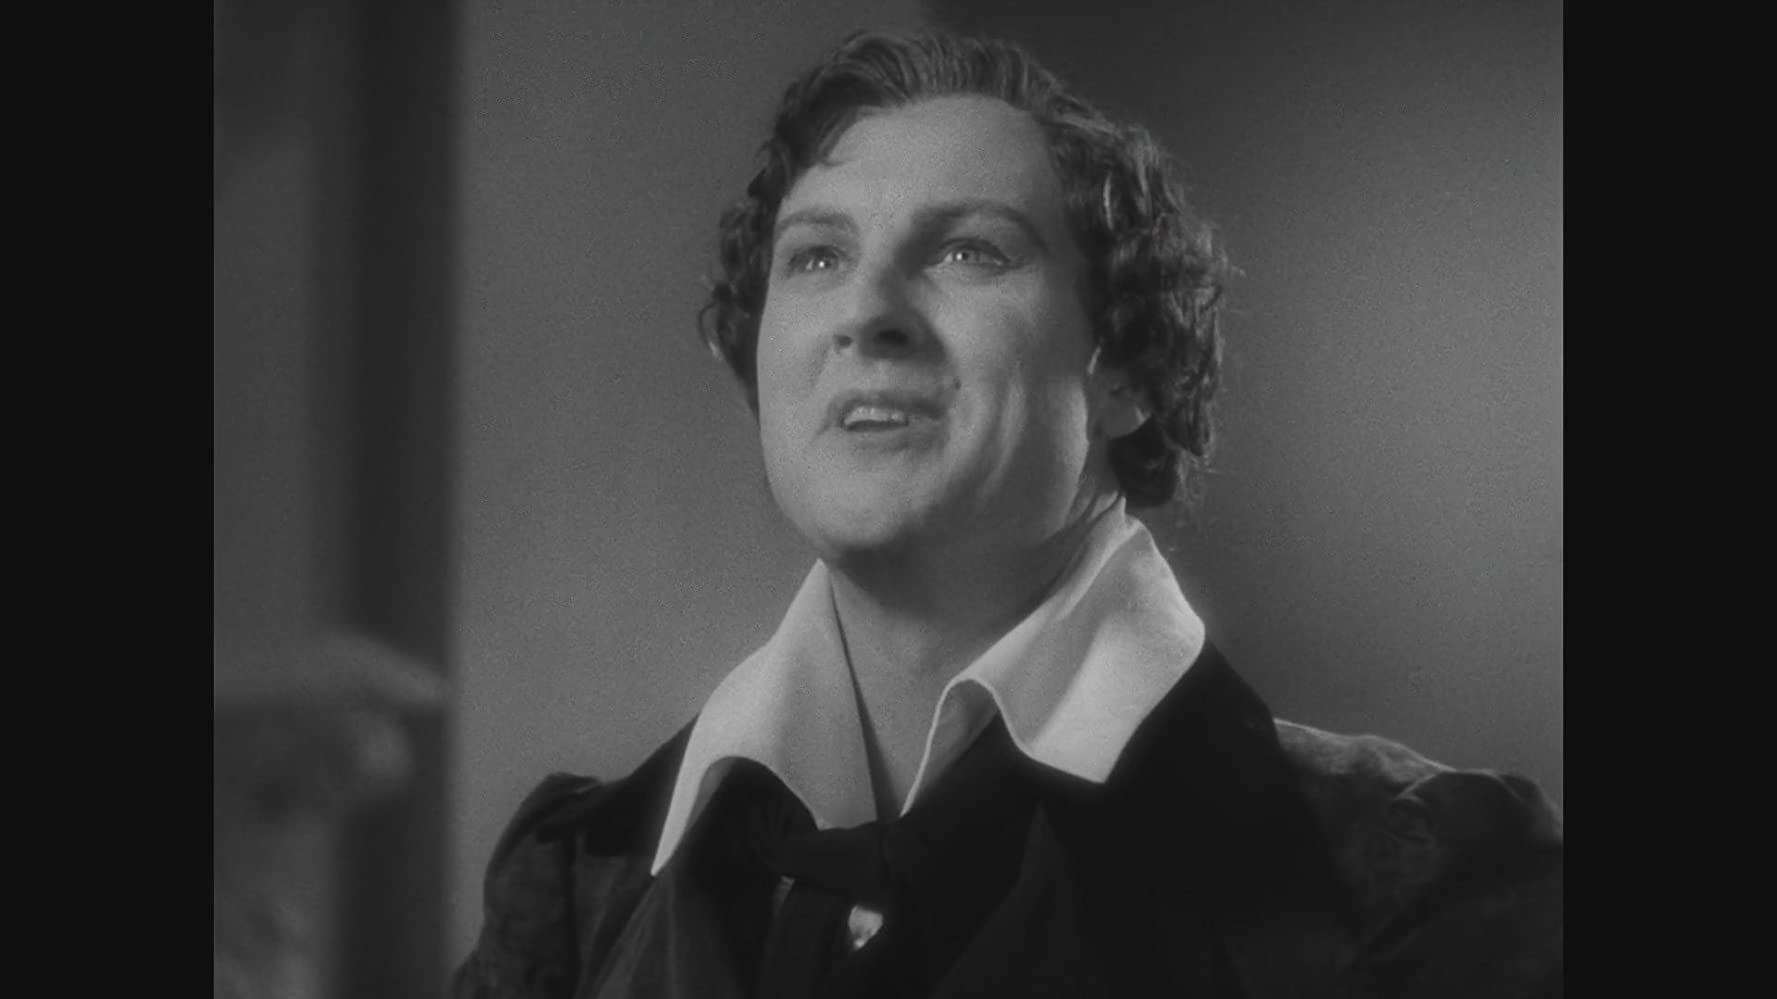 Gavin Gordon in Bride of Frankenstein (1935)